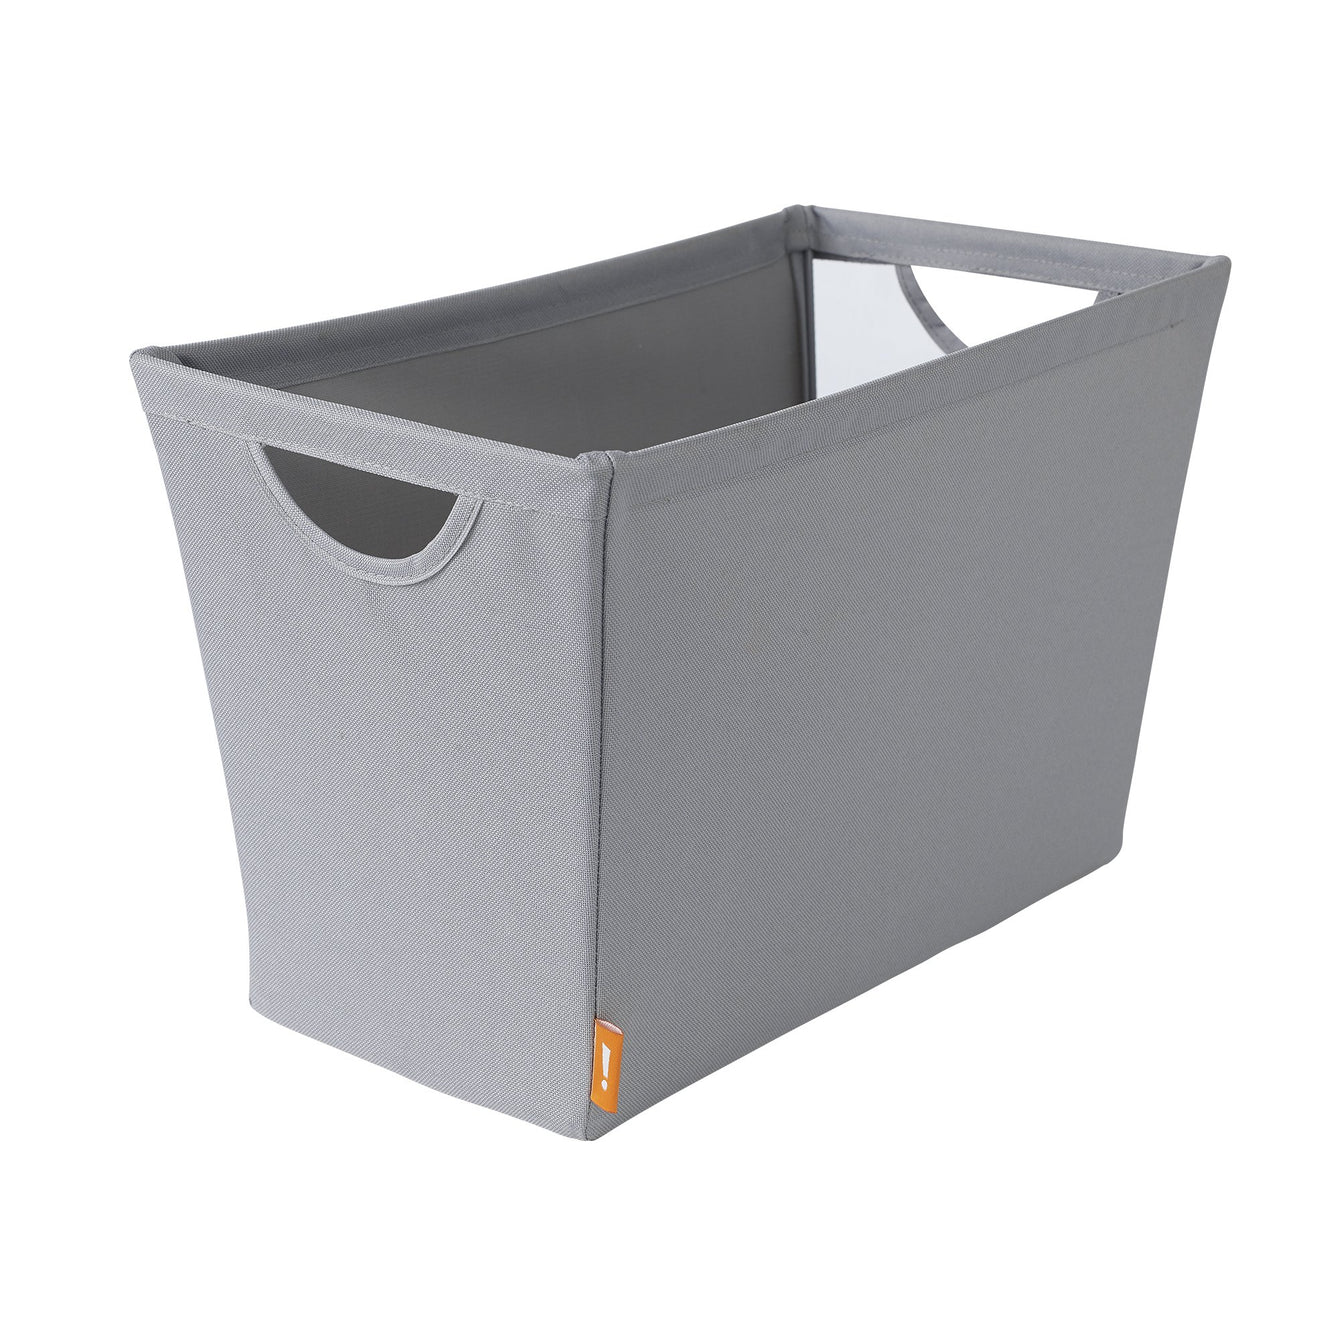 Narrow Wire Frame Fabric Storage Bin with Mesh Front - Style 5426